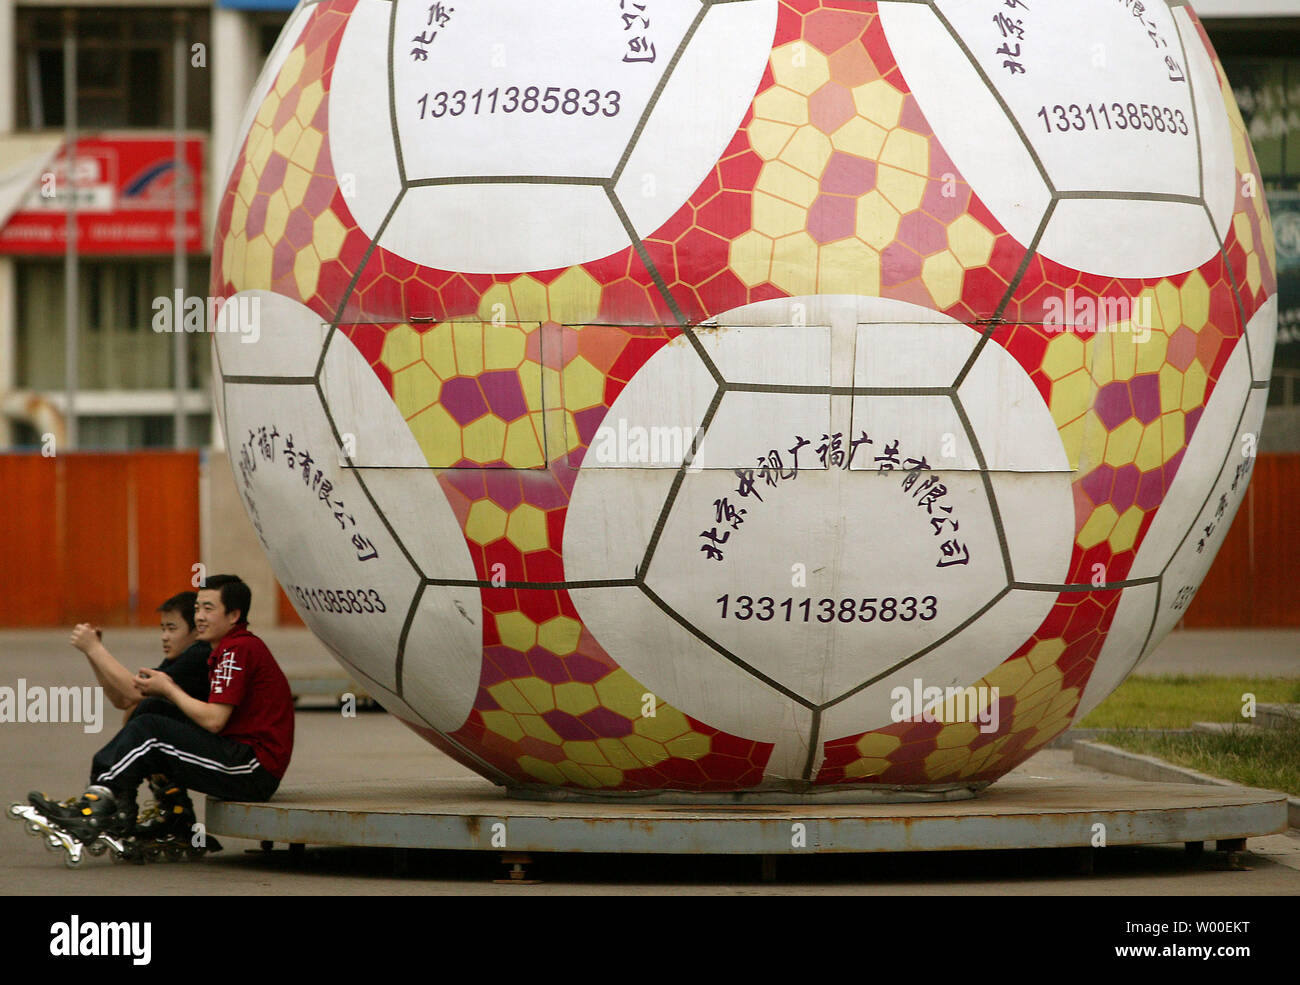 Two Chinese kids rest next to a giant inflatable soccer ball